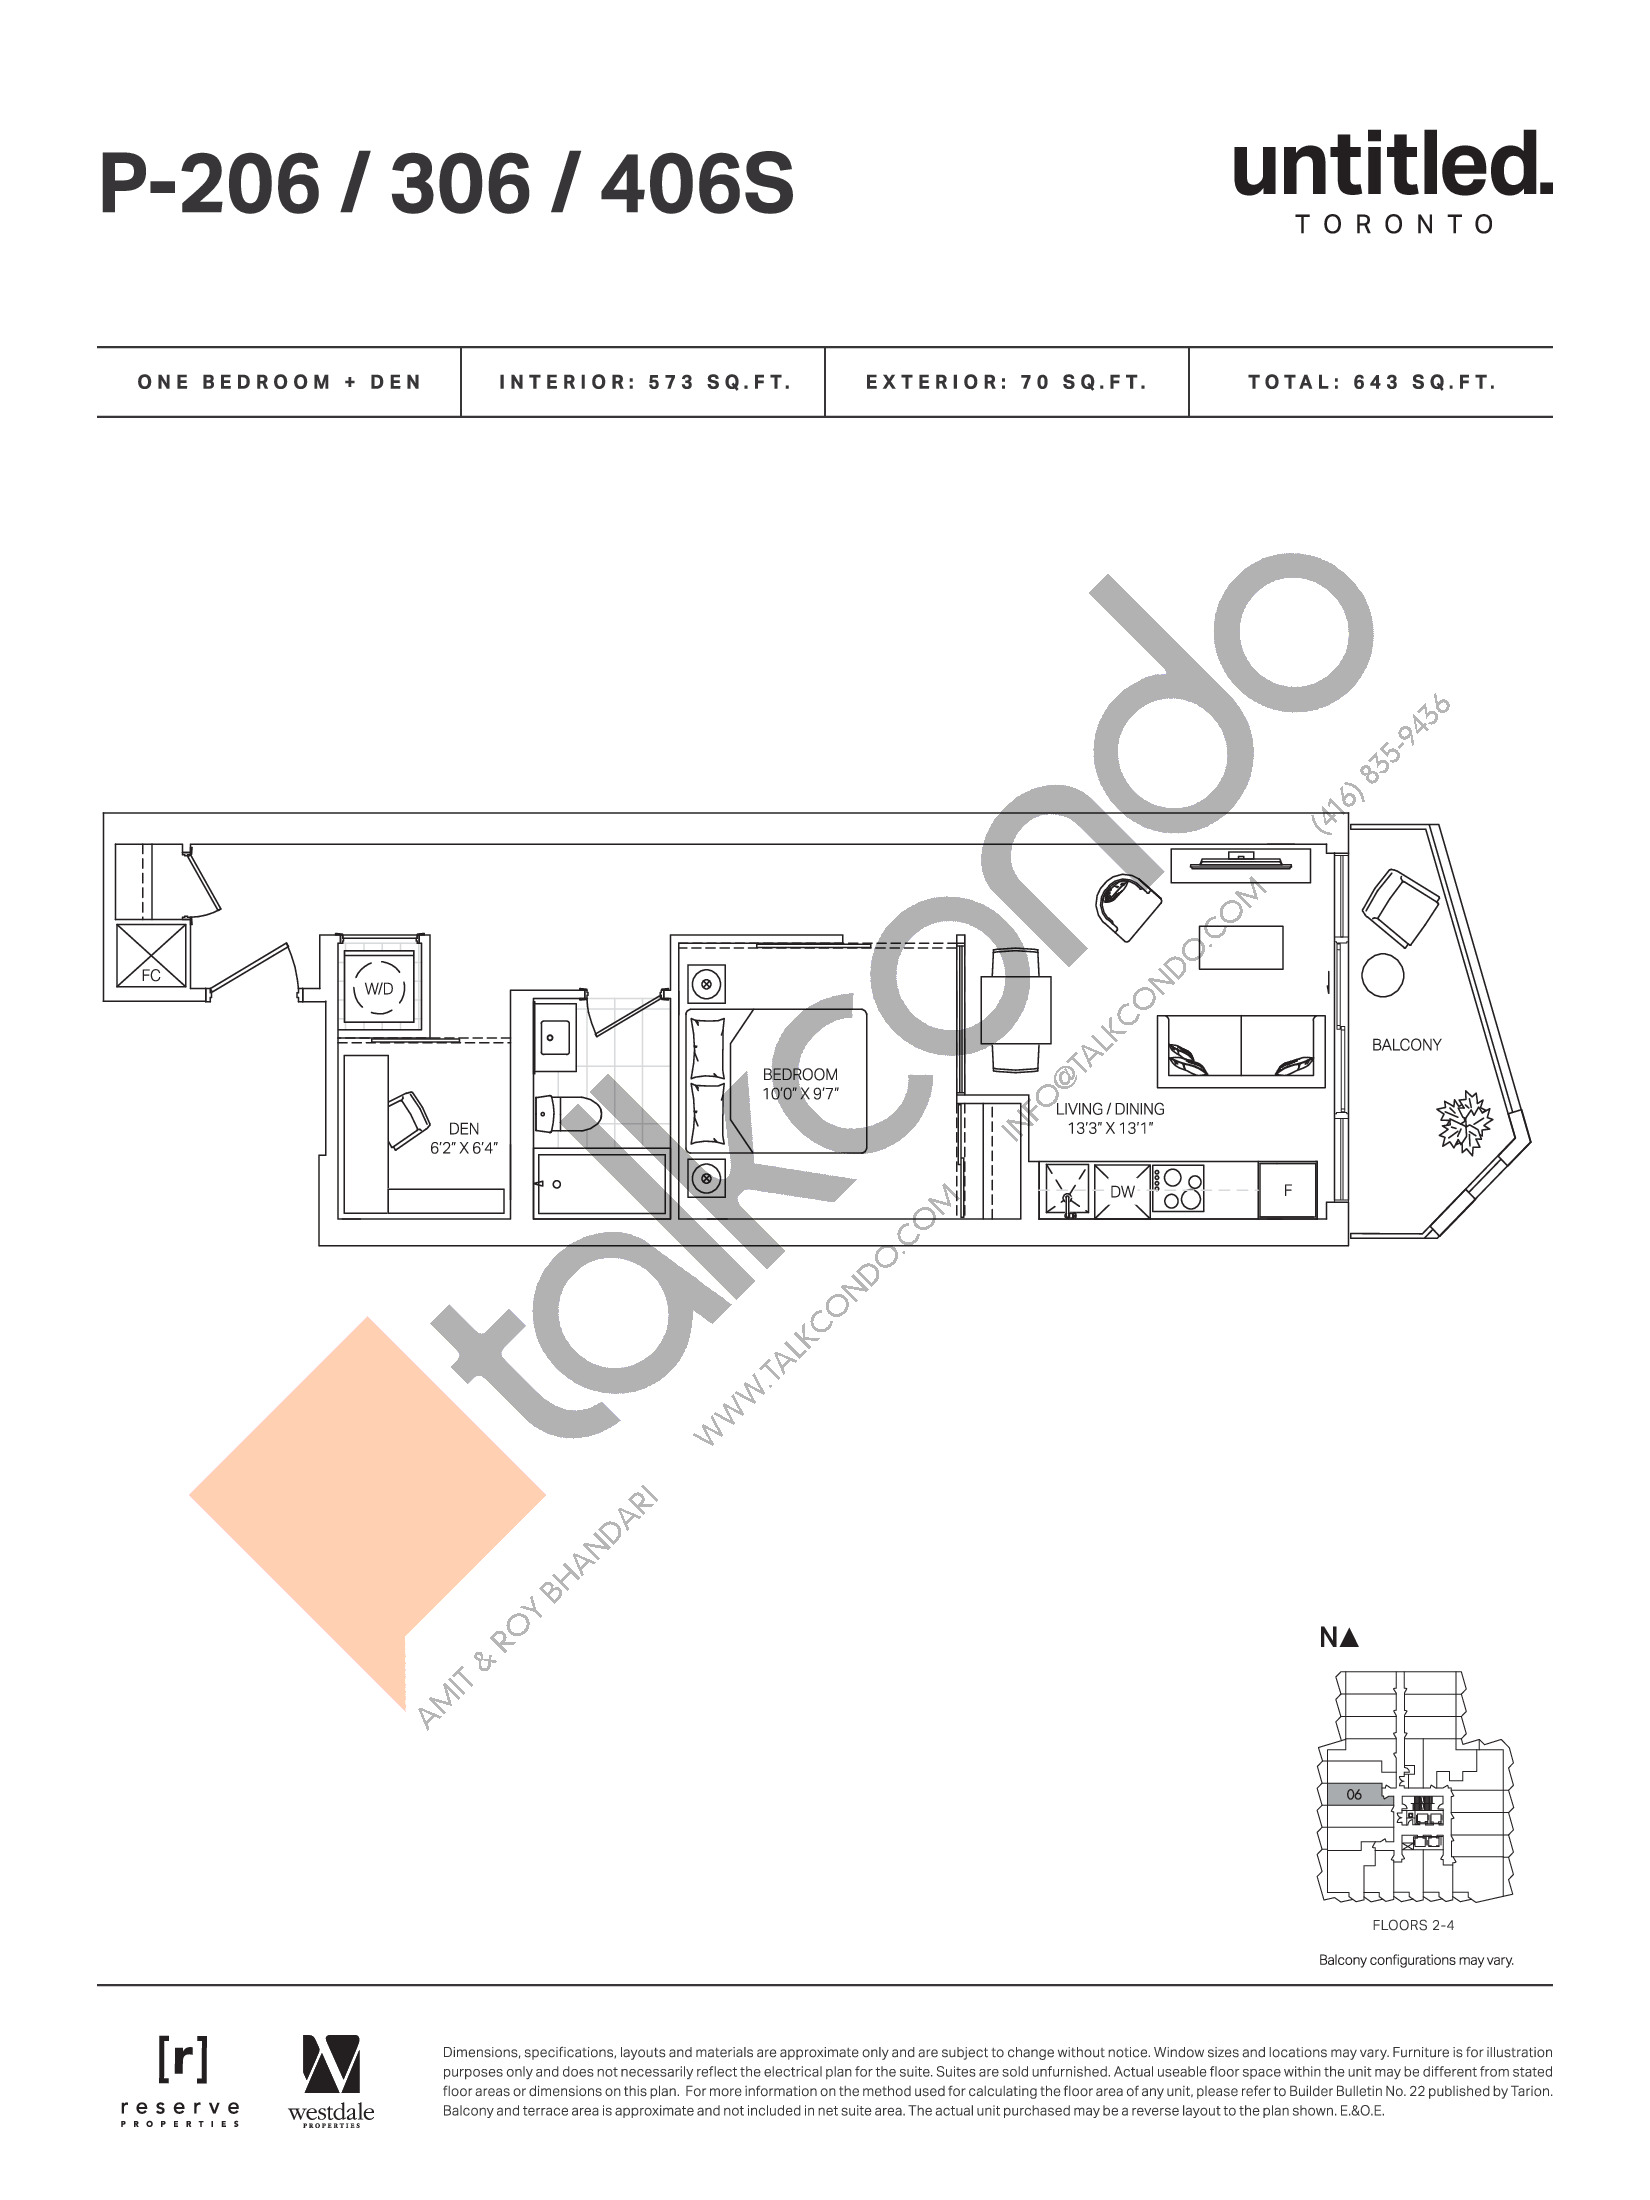 P-206 / 306 / 406S Floor Plan at Untitled Toronto Condos - 573 sq.ft